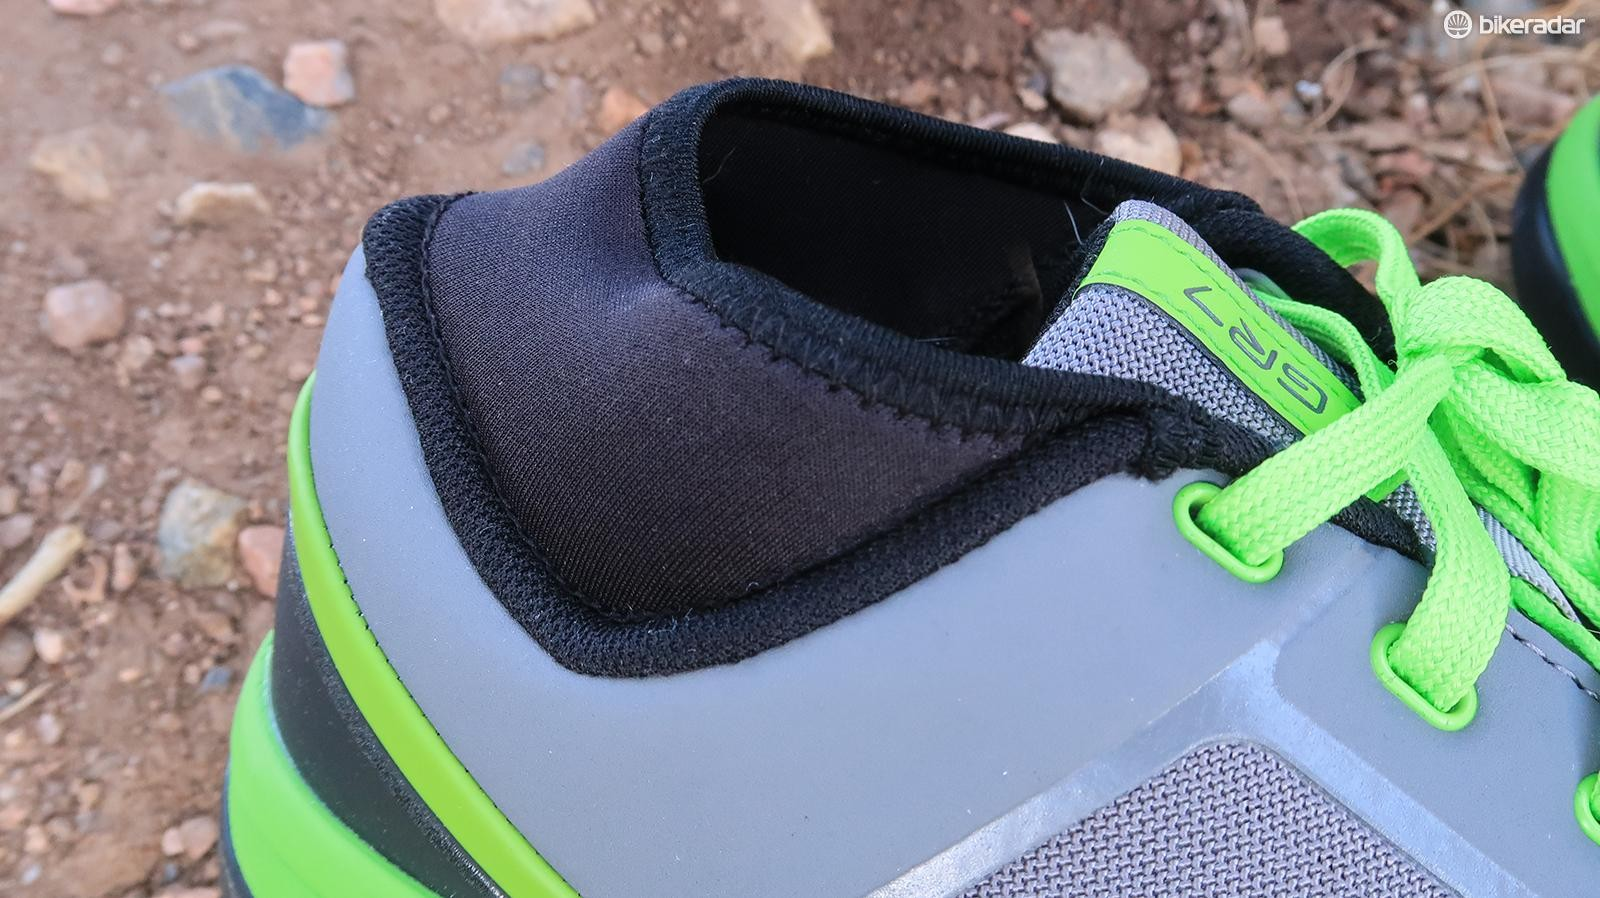 A cuff around the ankle keeps rocks from working their way in